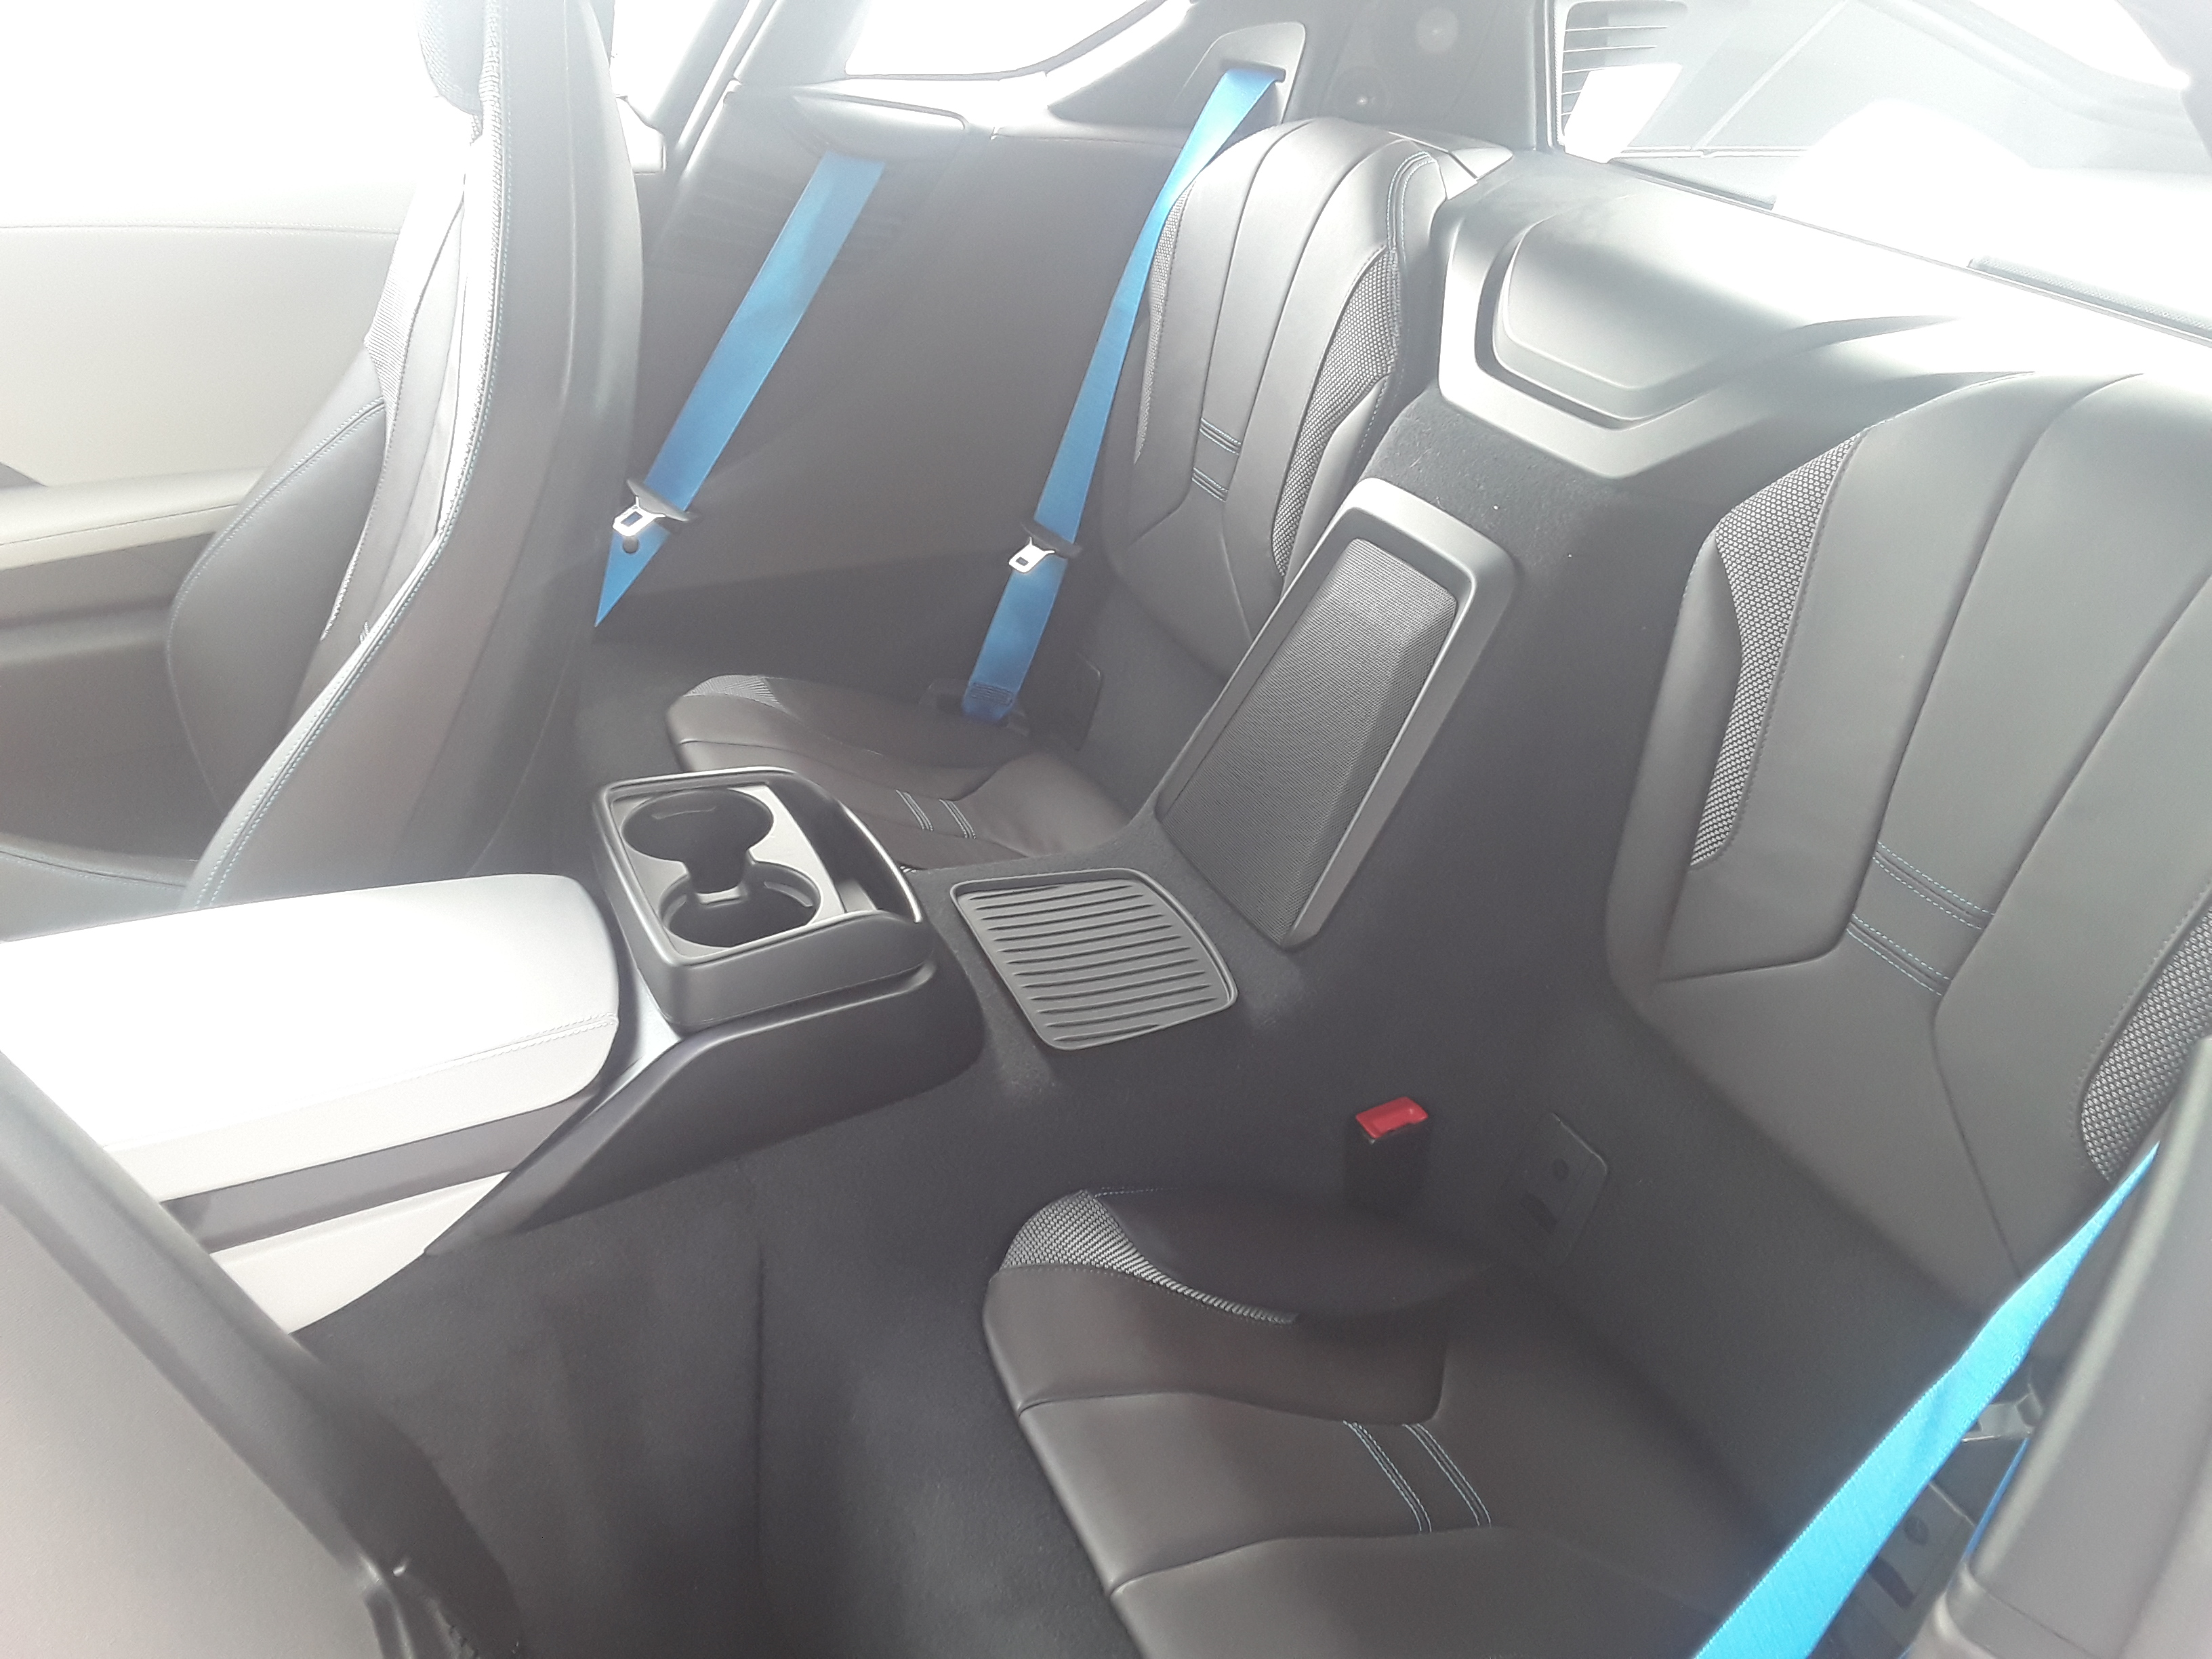 BMW i8 Backseats